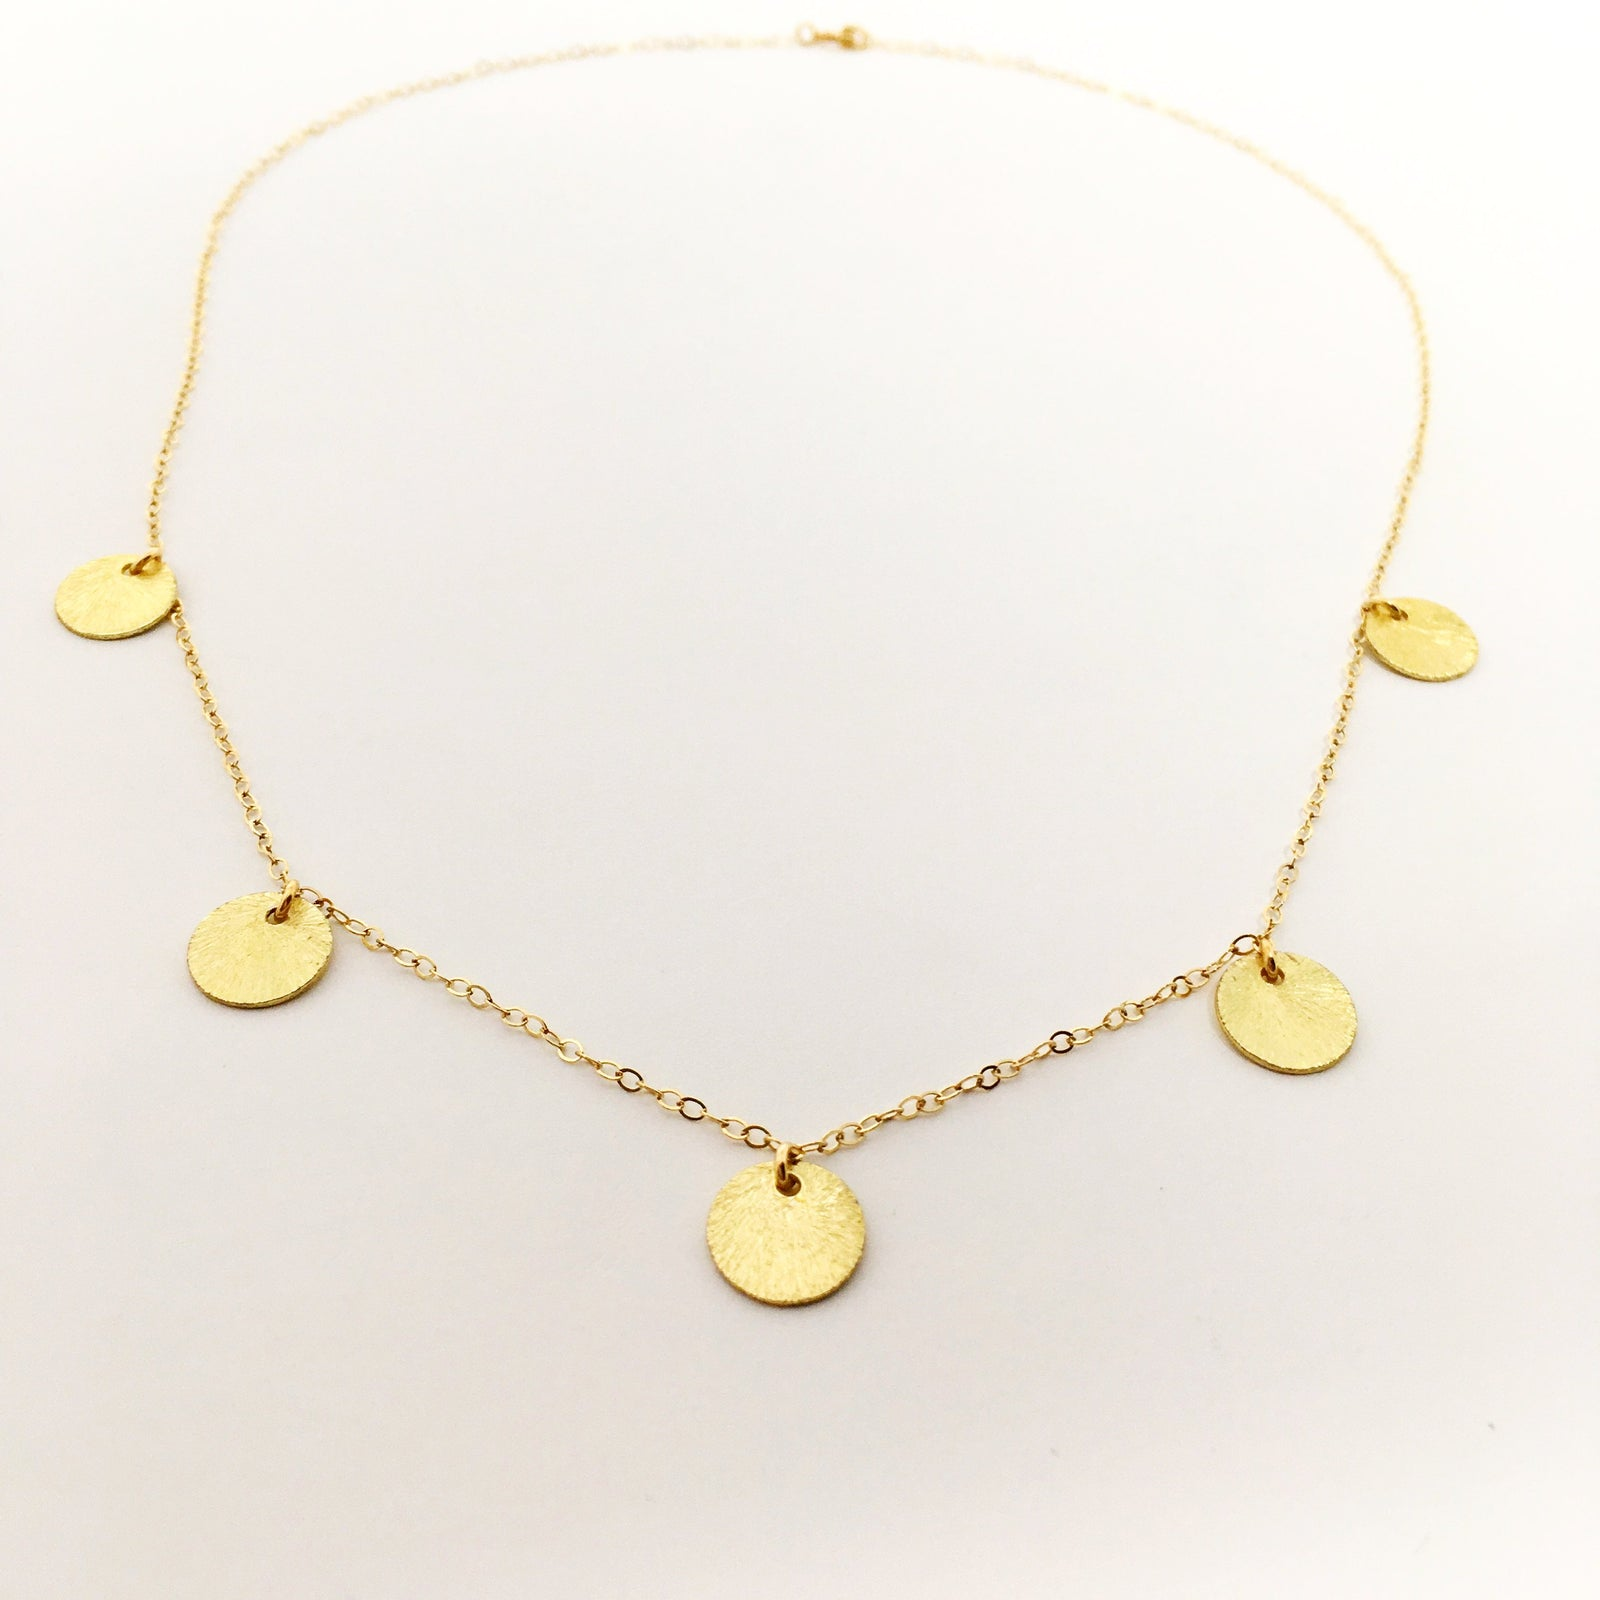 14K FEATHERED DISK GOLD NECKLACE